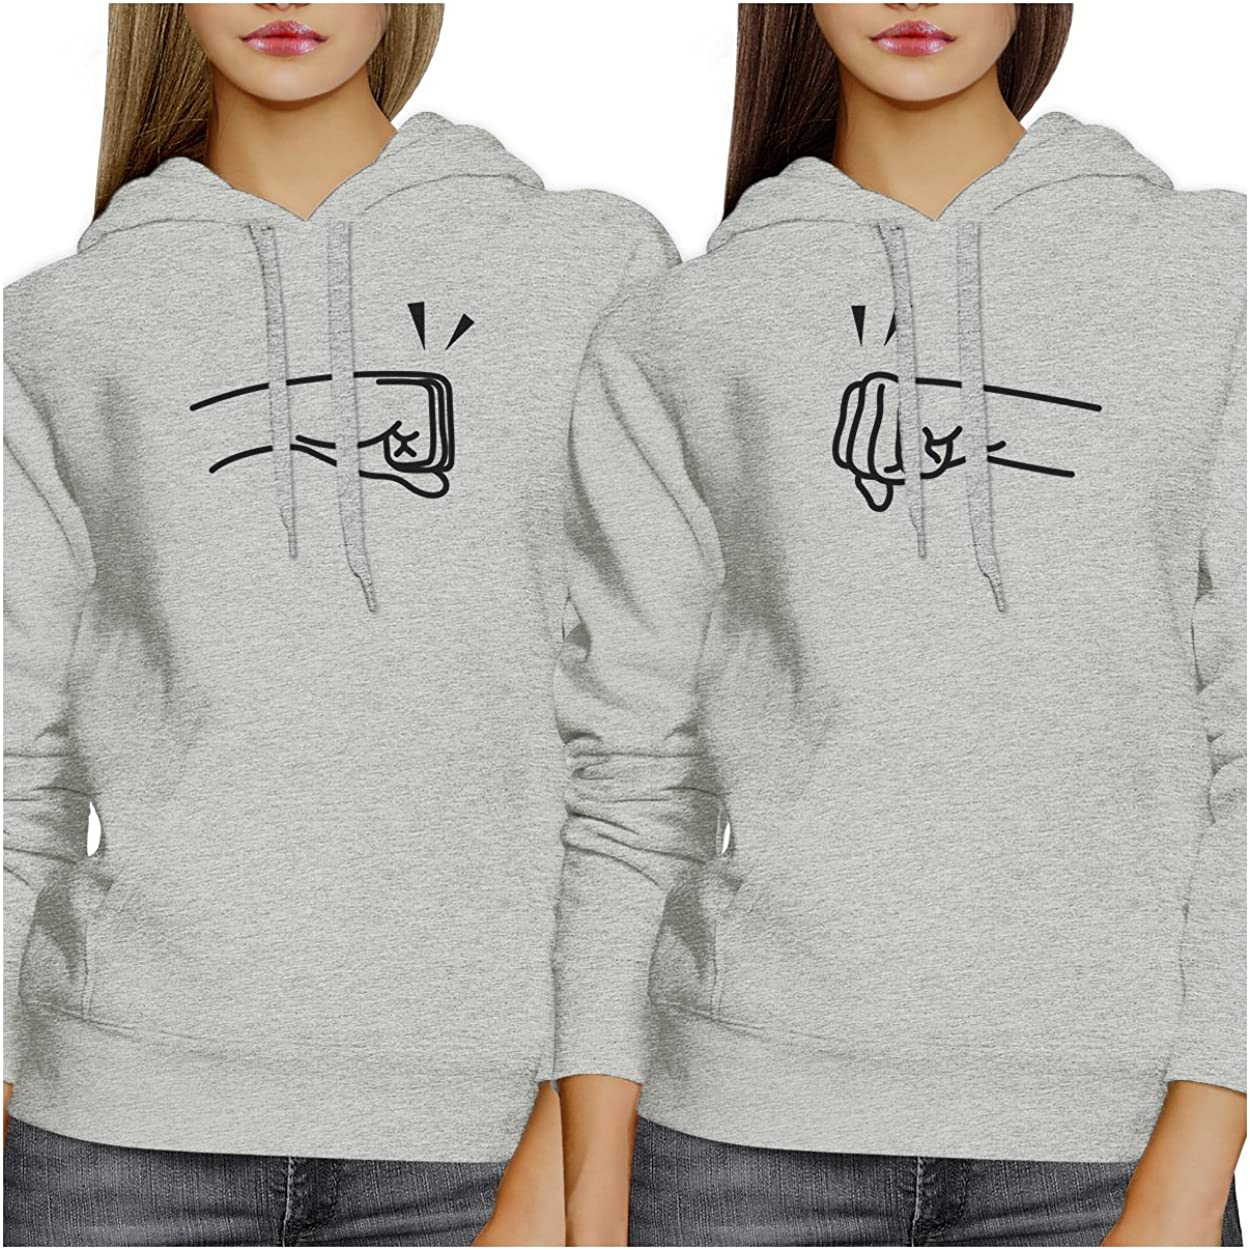 365 Printing Fists Pound Unisex Friend Matching Couple Hoodie Pullover Top